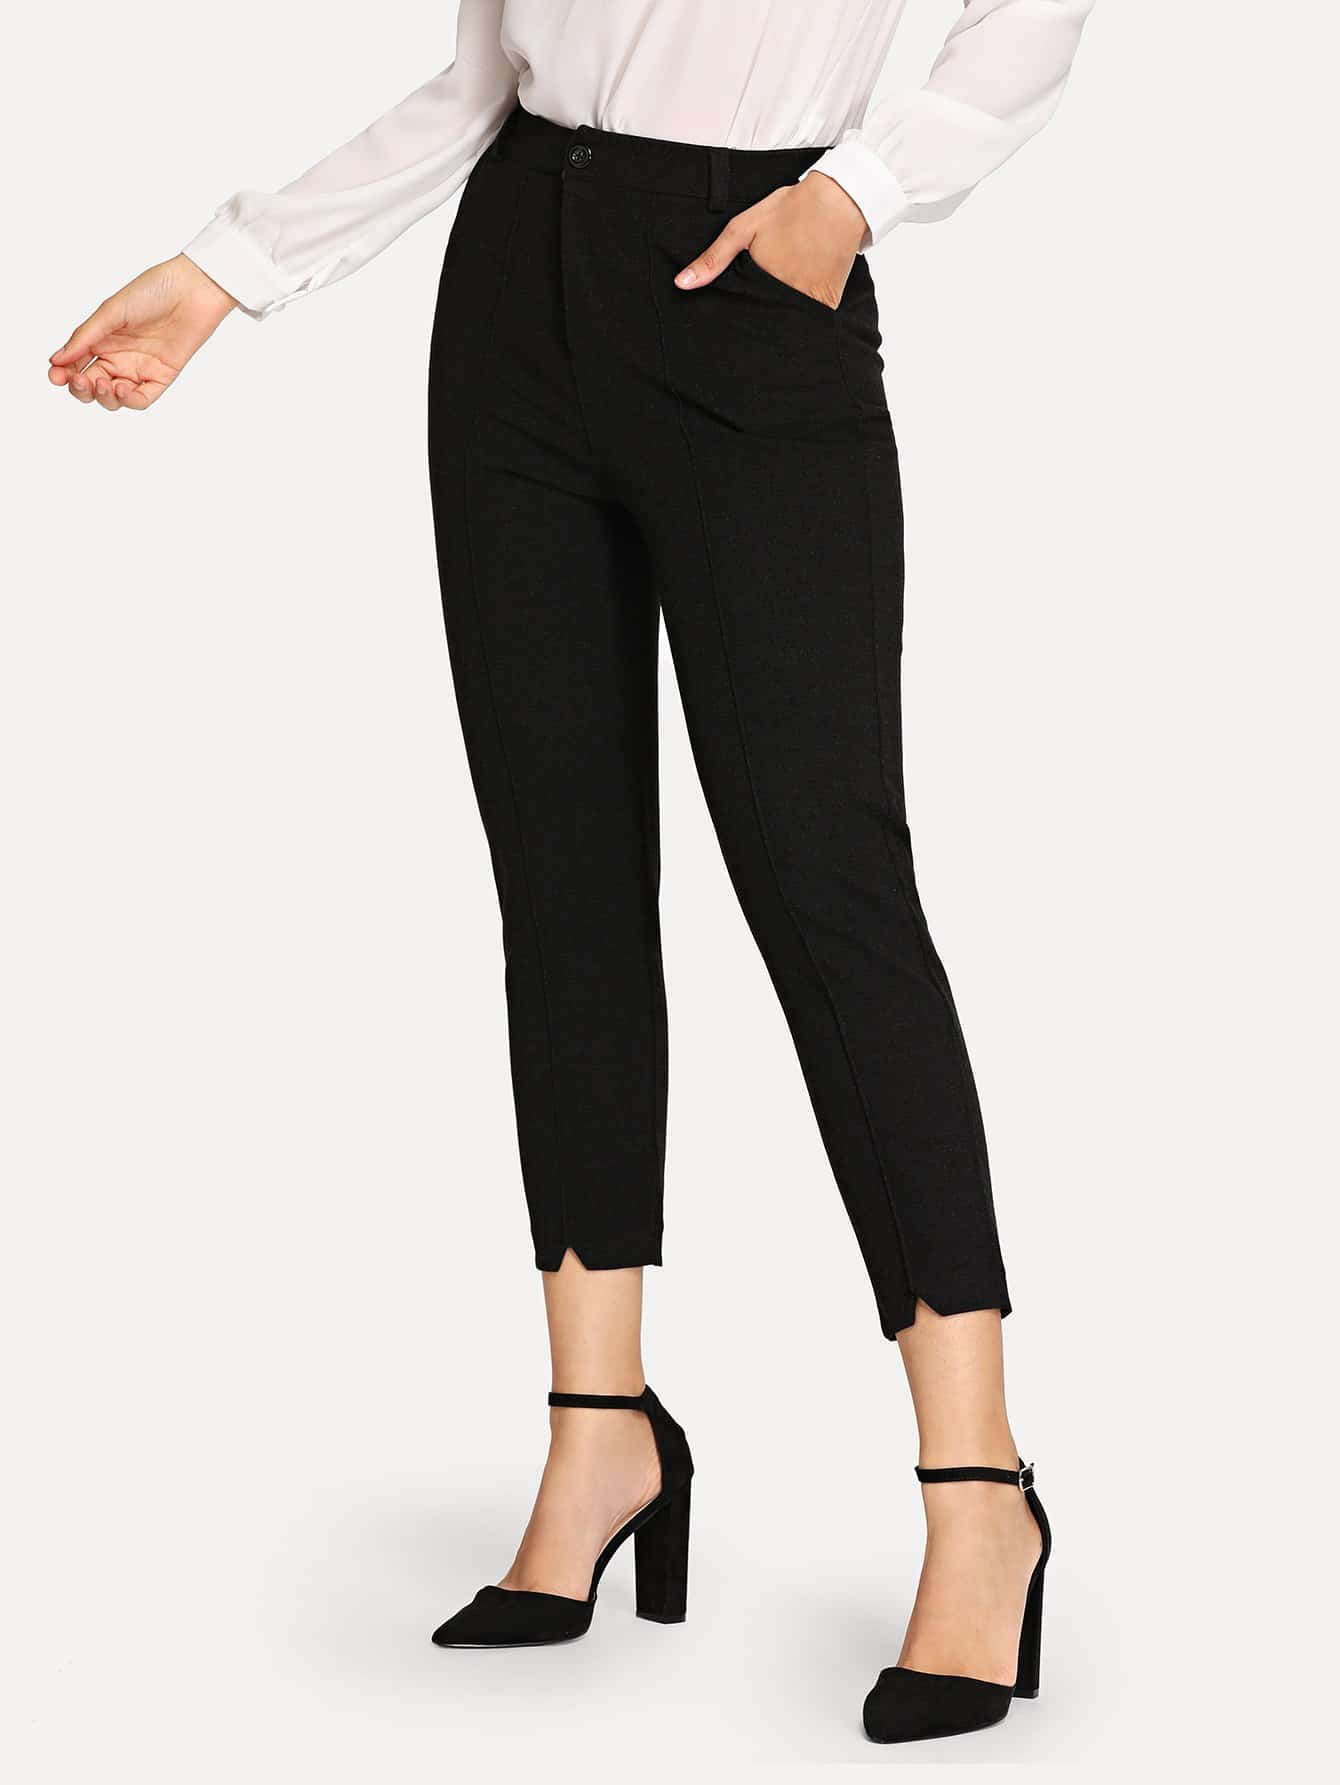 Asymmetrical Hem Solid Pants Asymmetrical Hem Solid Pants